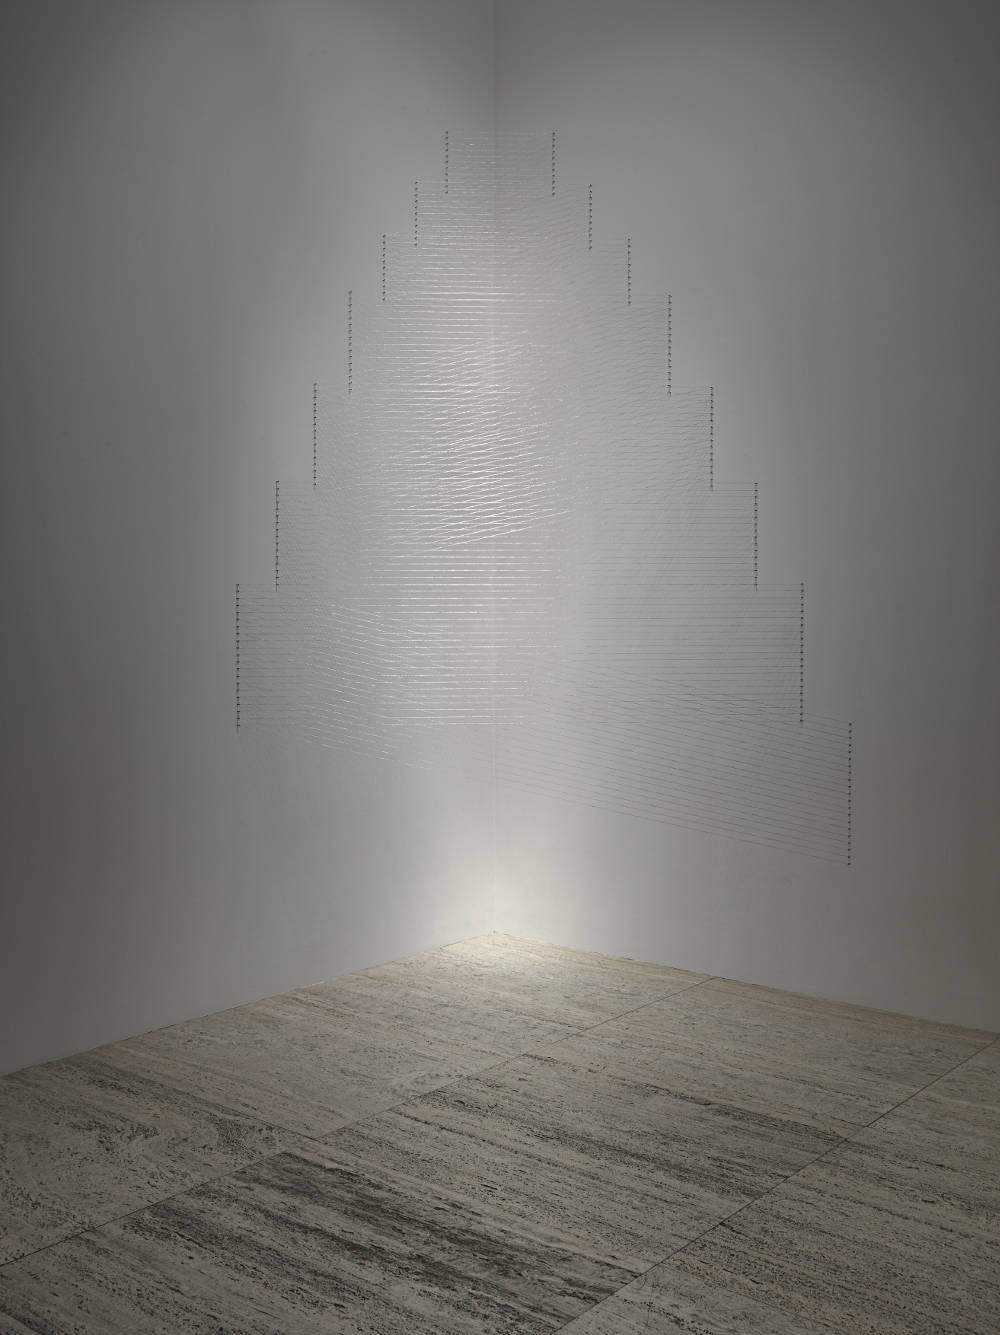 Hauser Wirth 69th St Lygia Pape 7